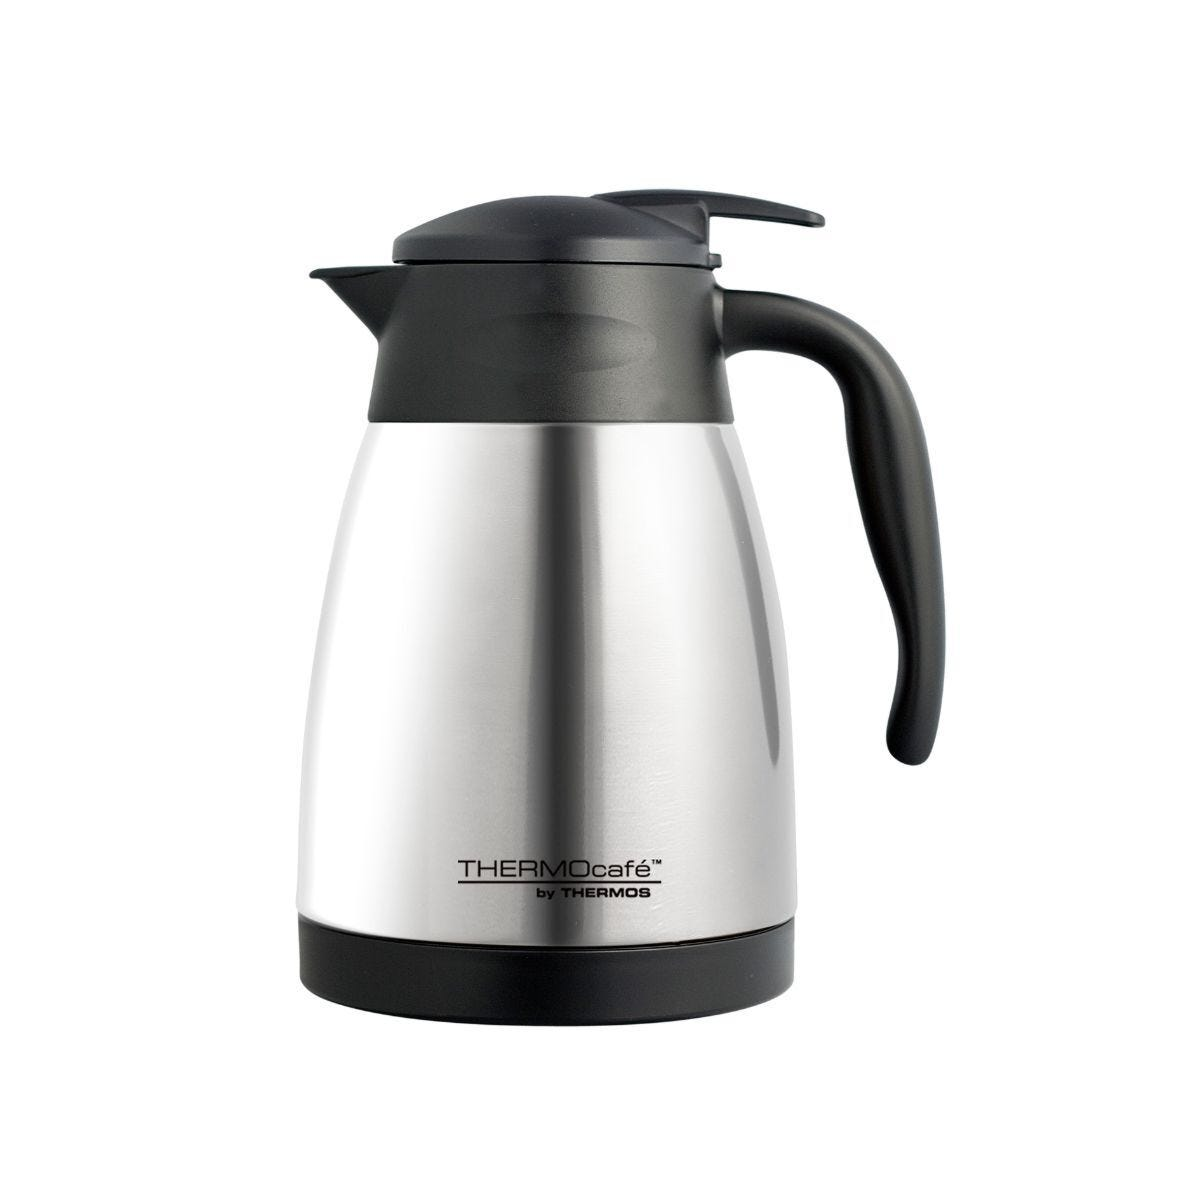 ThermoCafe Thermos Stainless Steel Carafe Jug 1.0L